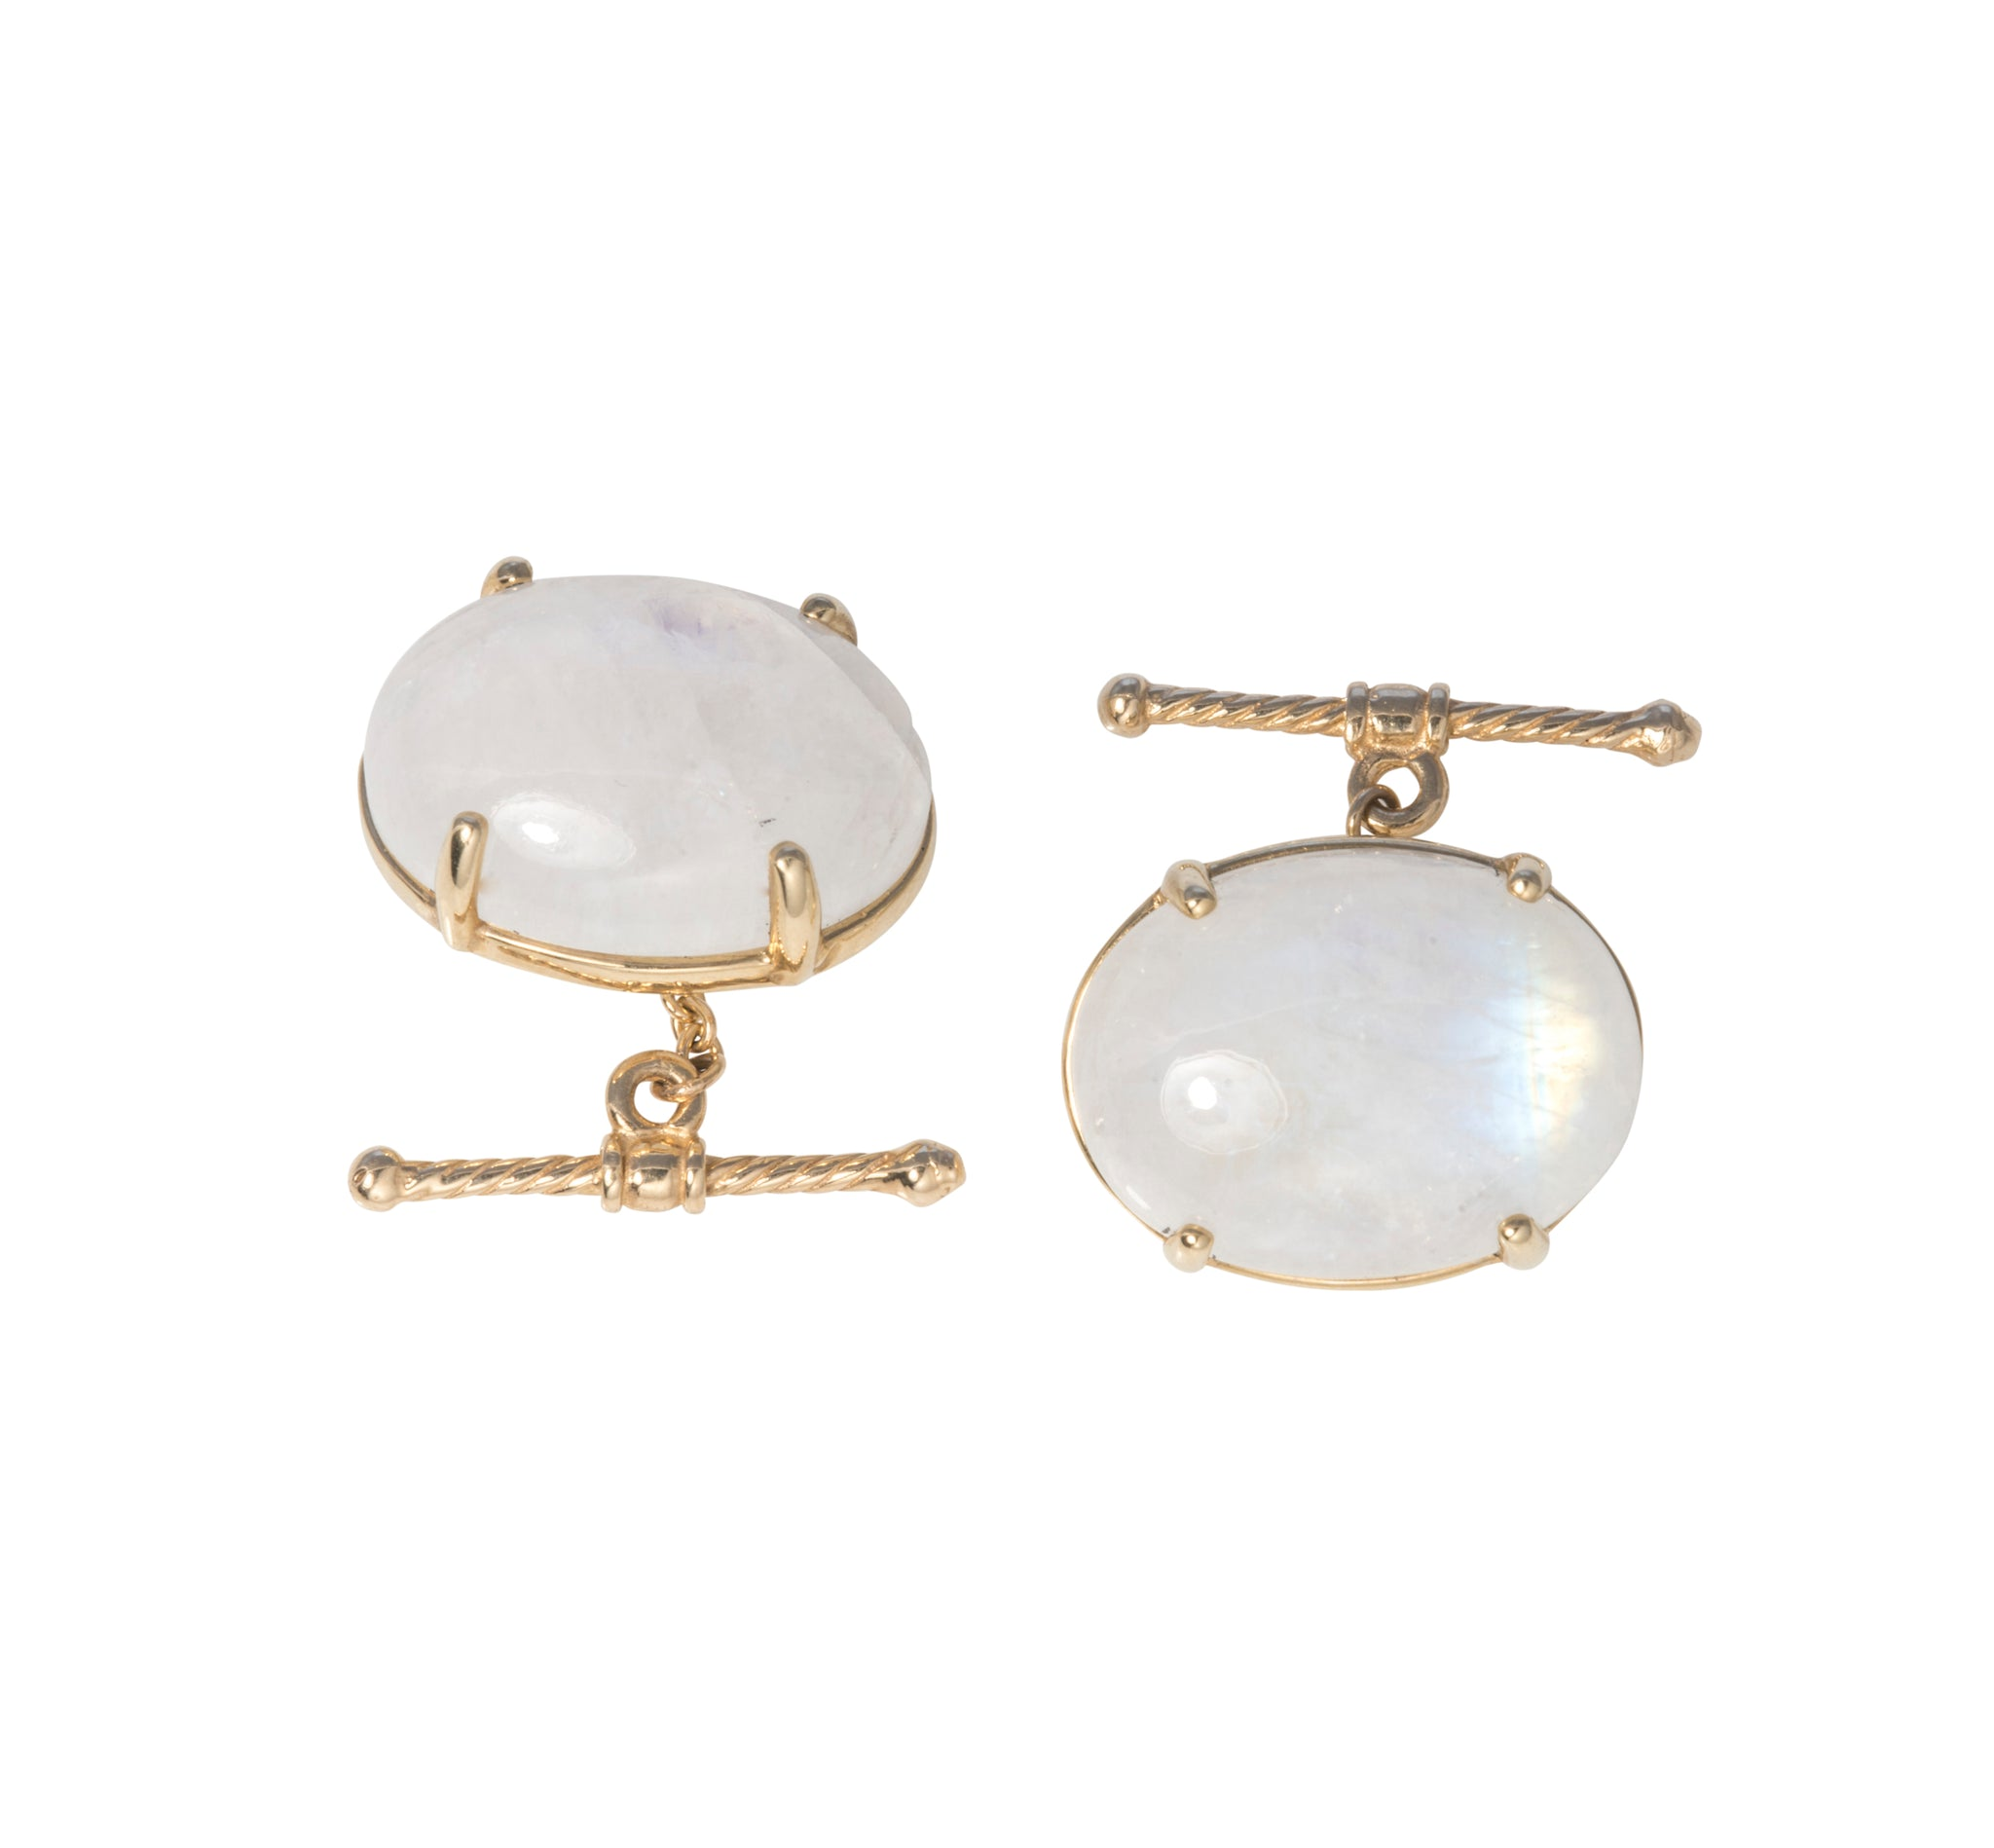 Dudley VanDyke Moonstone Oval 14K Gold Cufflinks